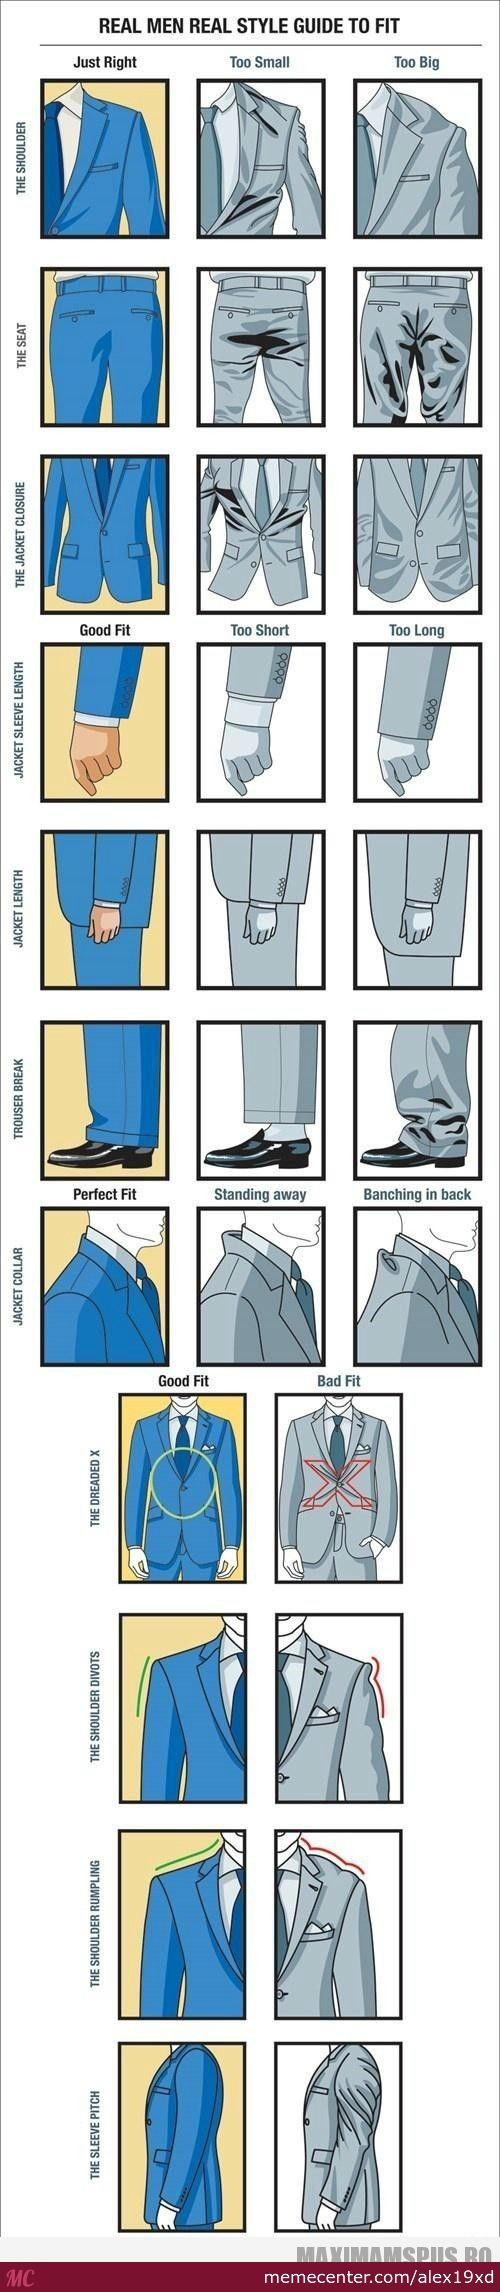 A Really Cool Style Guide For Men! :))